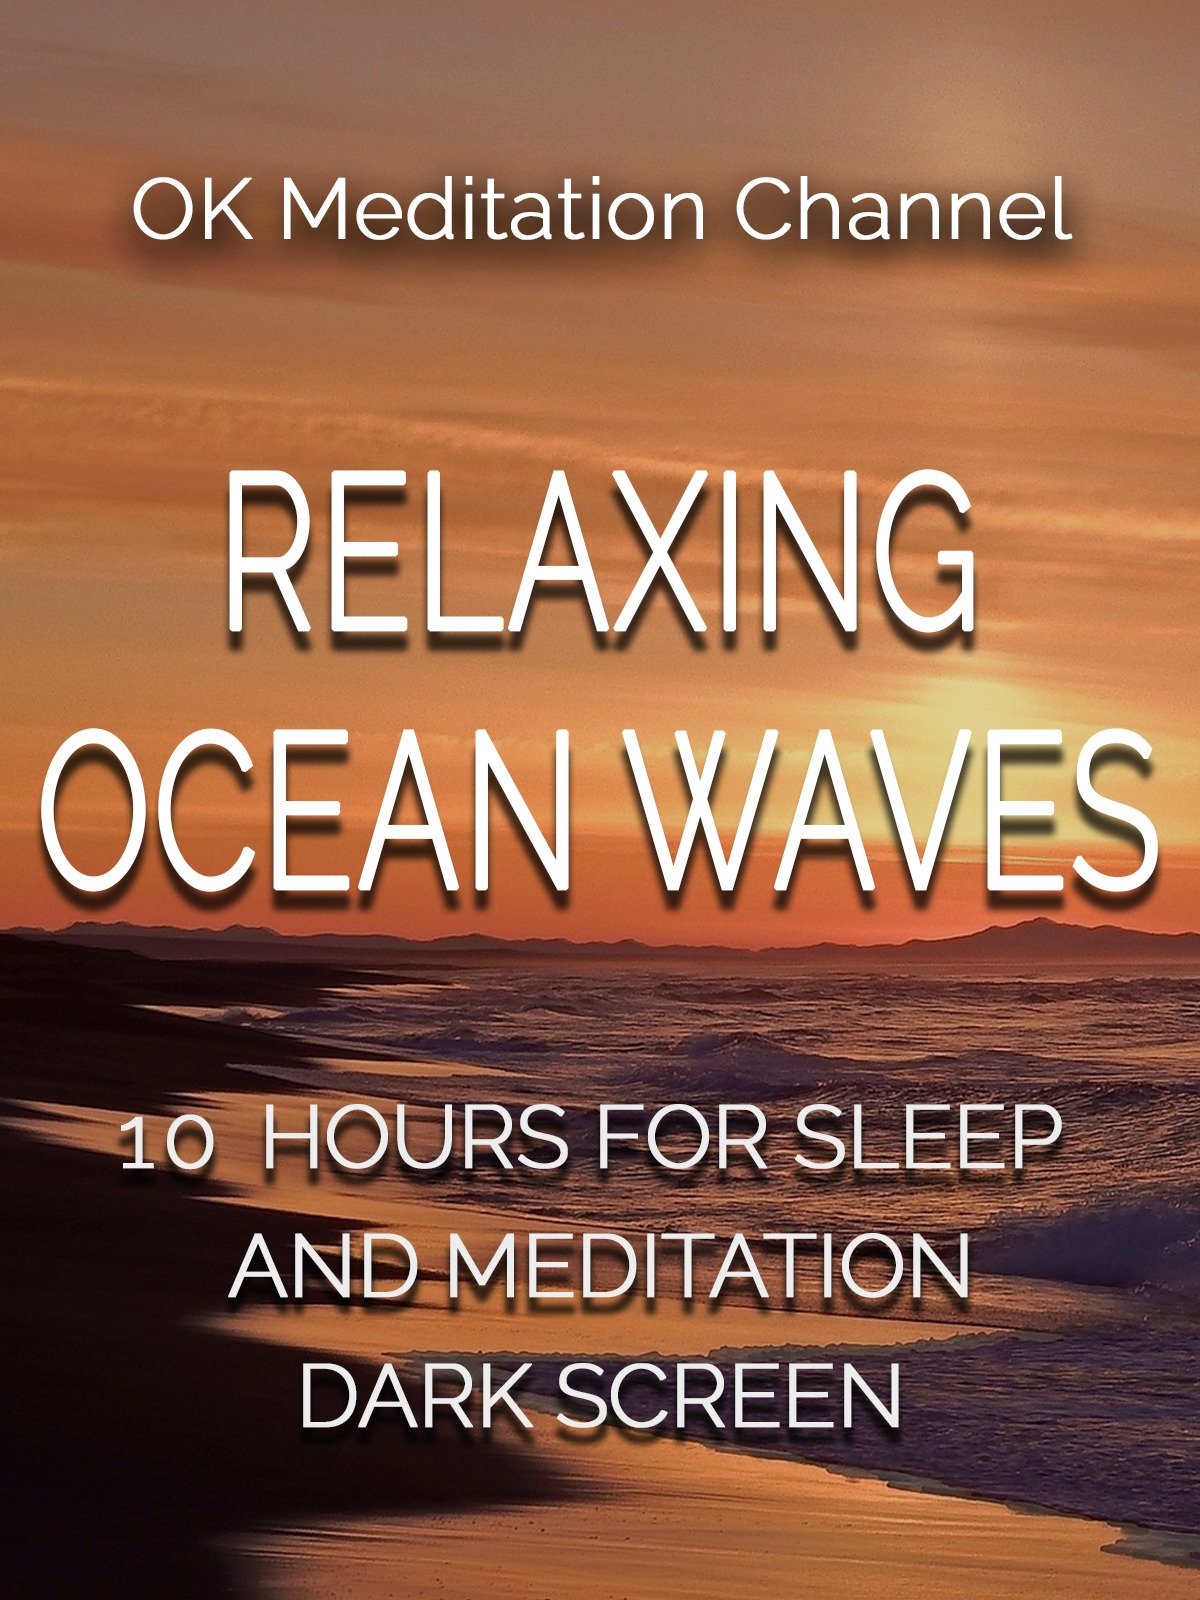 Relaxing ocean waves, 10 hours for sleep and meditation, dark screen on Amazon Prime Instant Video UK